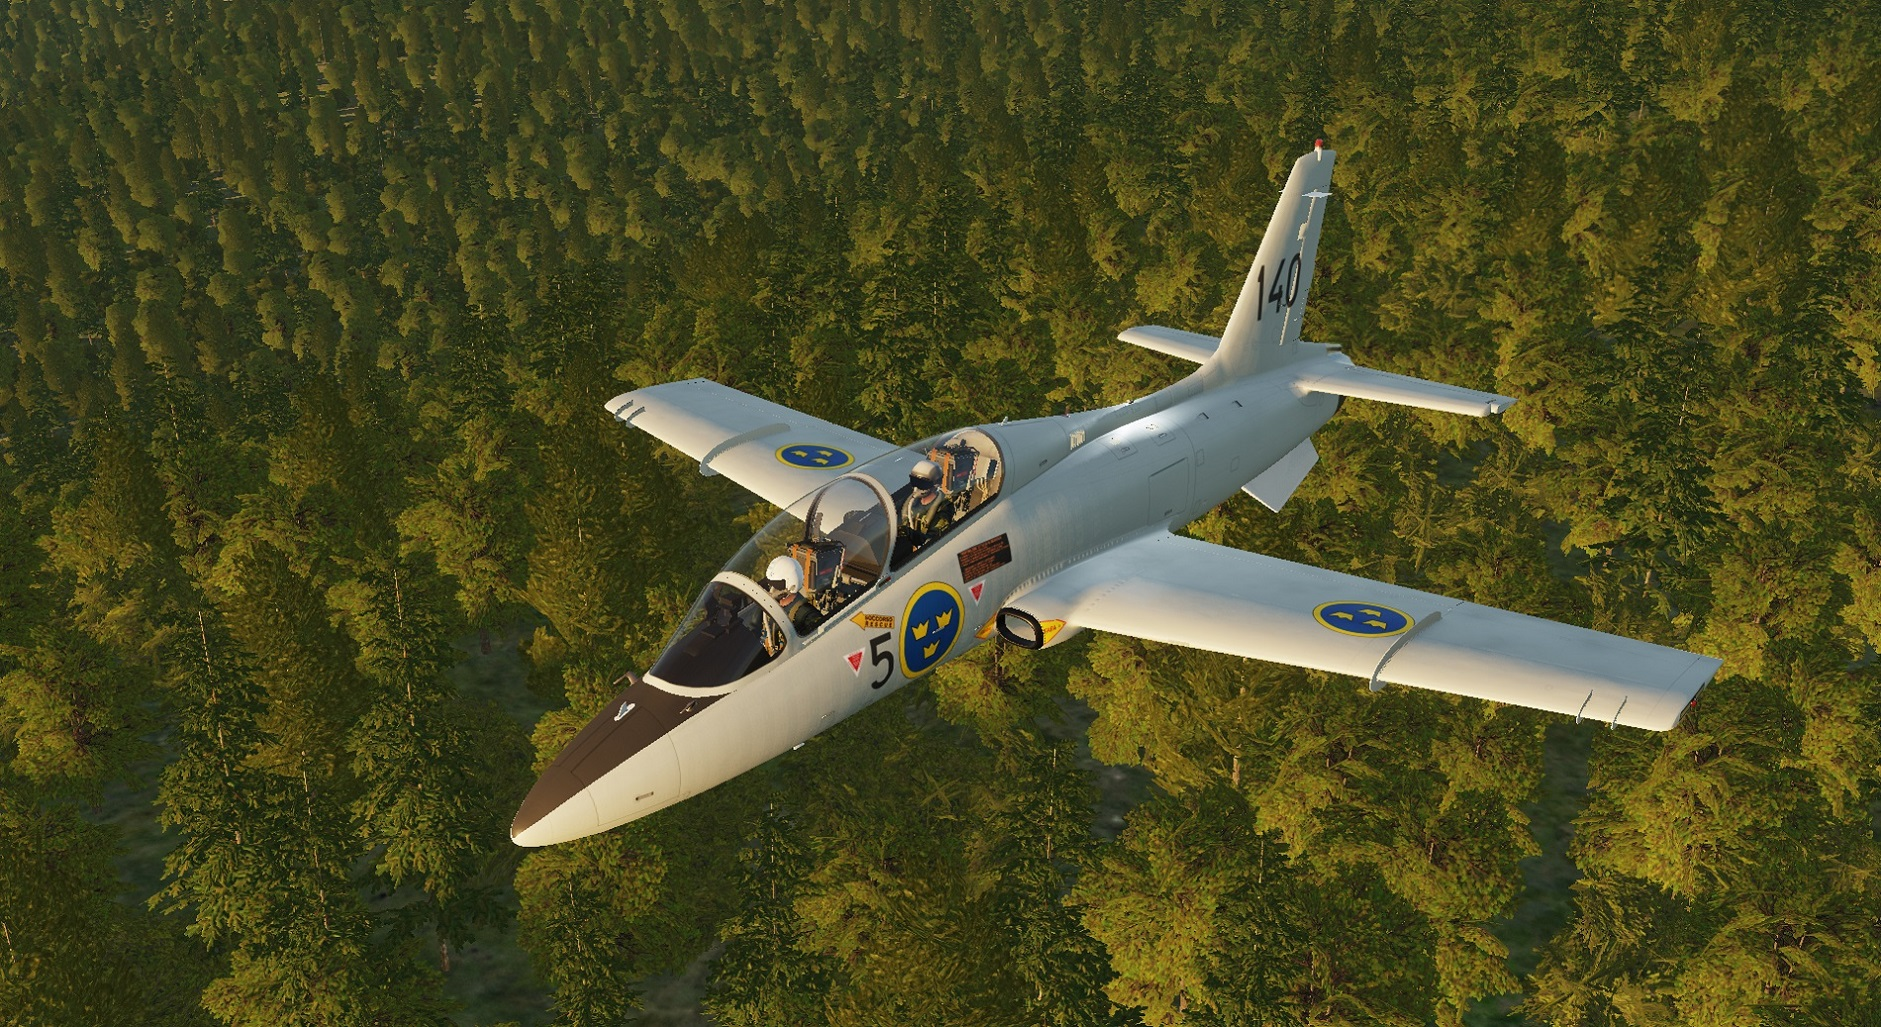 MB-339 Swedish Air Force Trainer